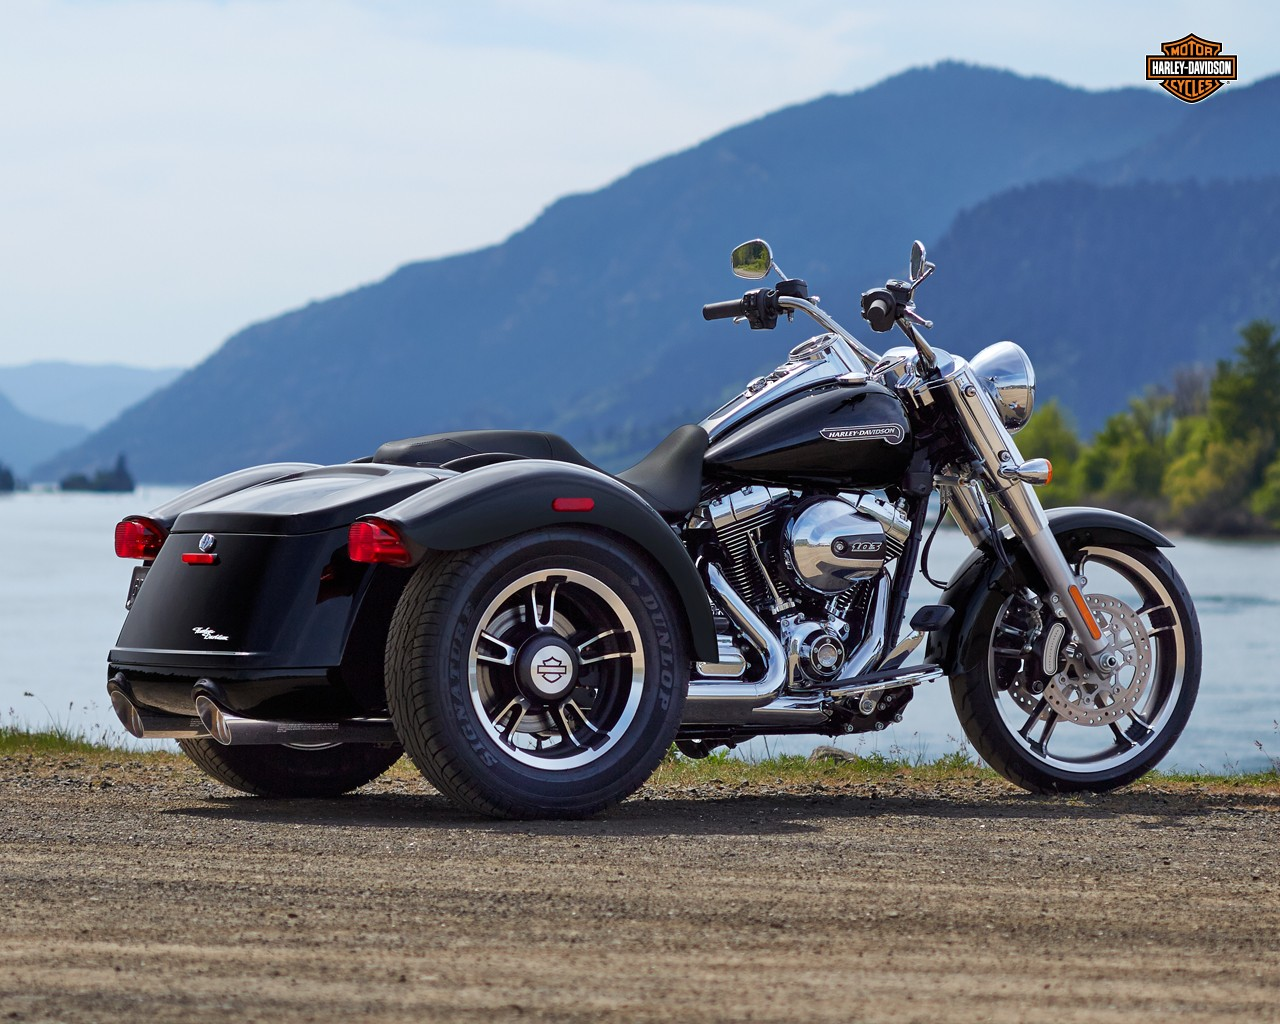 Harley Davidson 2015 Models Announced New Freewheeler Trike And Return Of The Road Glide